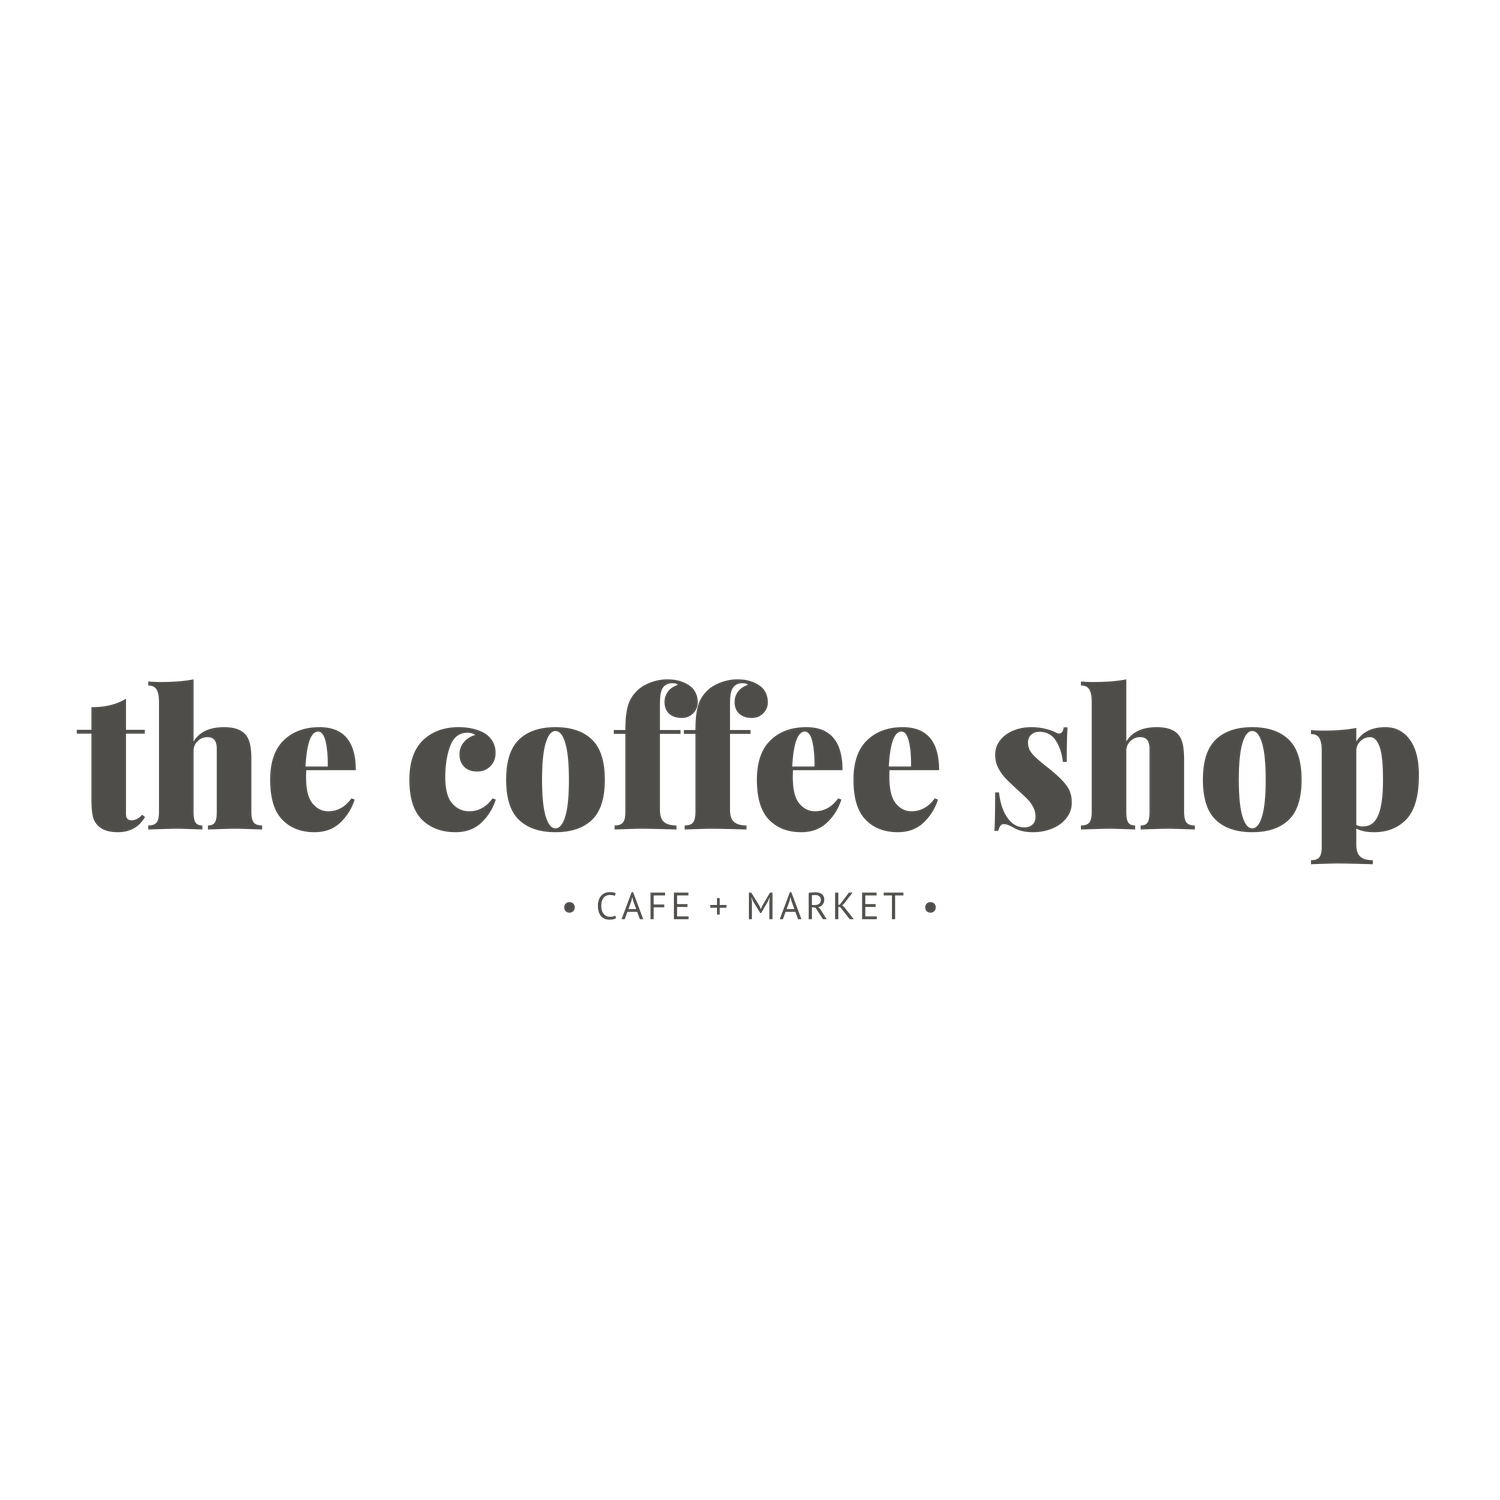 THE COFFEE SHOP LOGOTYPE AND BRANDING